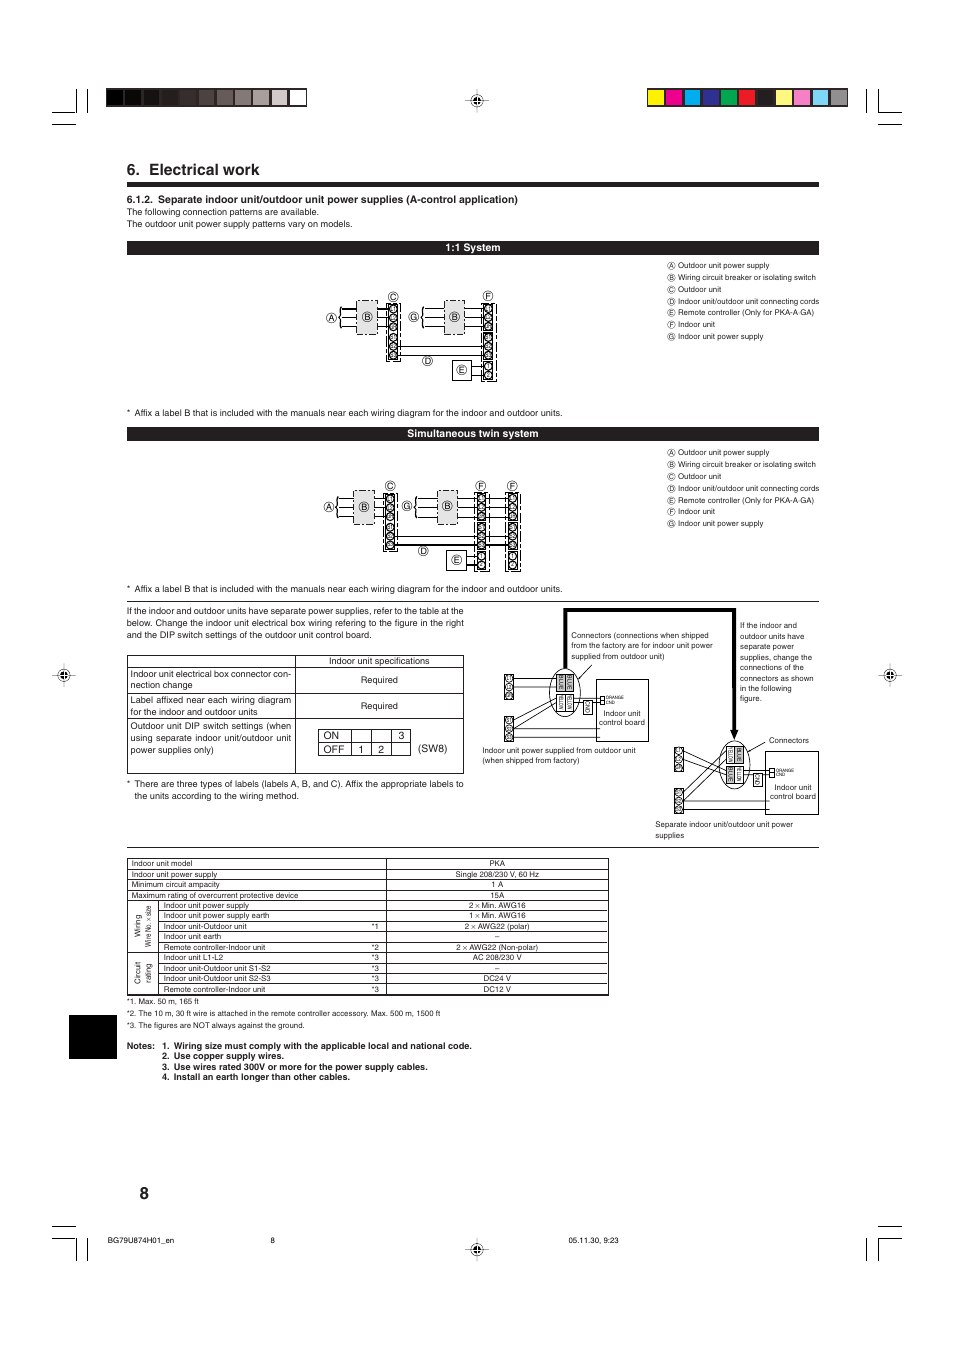 hight resolution of electrical work mitsubishi electric mr slim pka a ga user manual